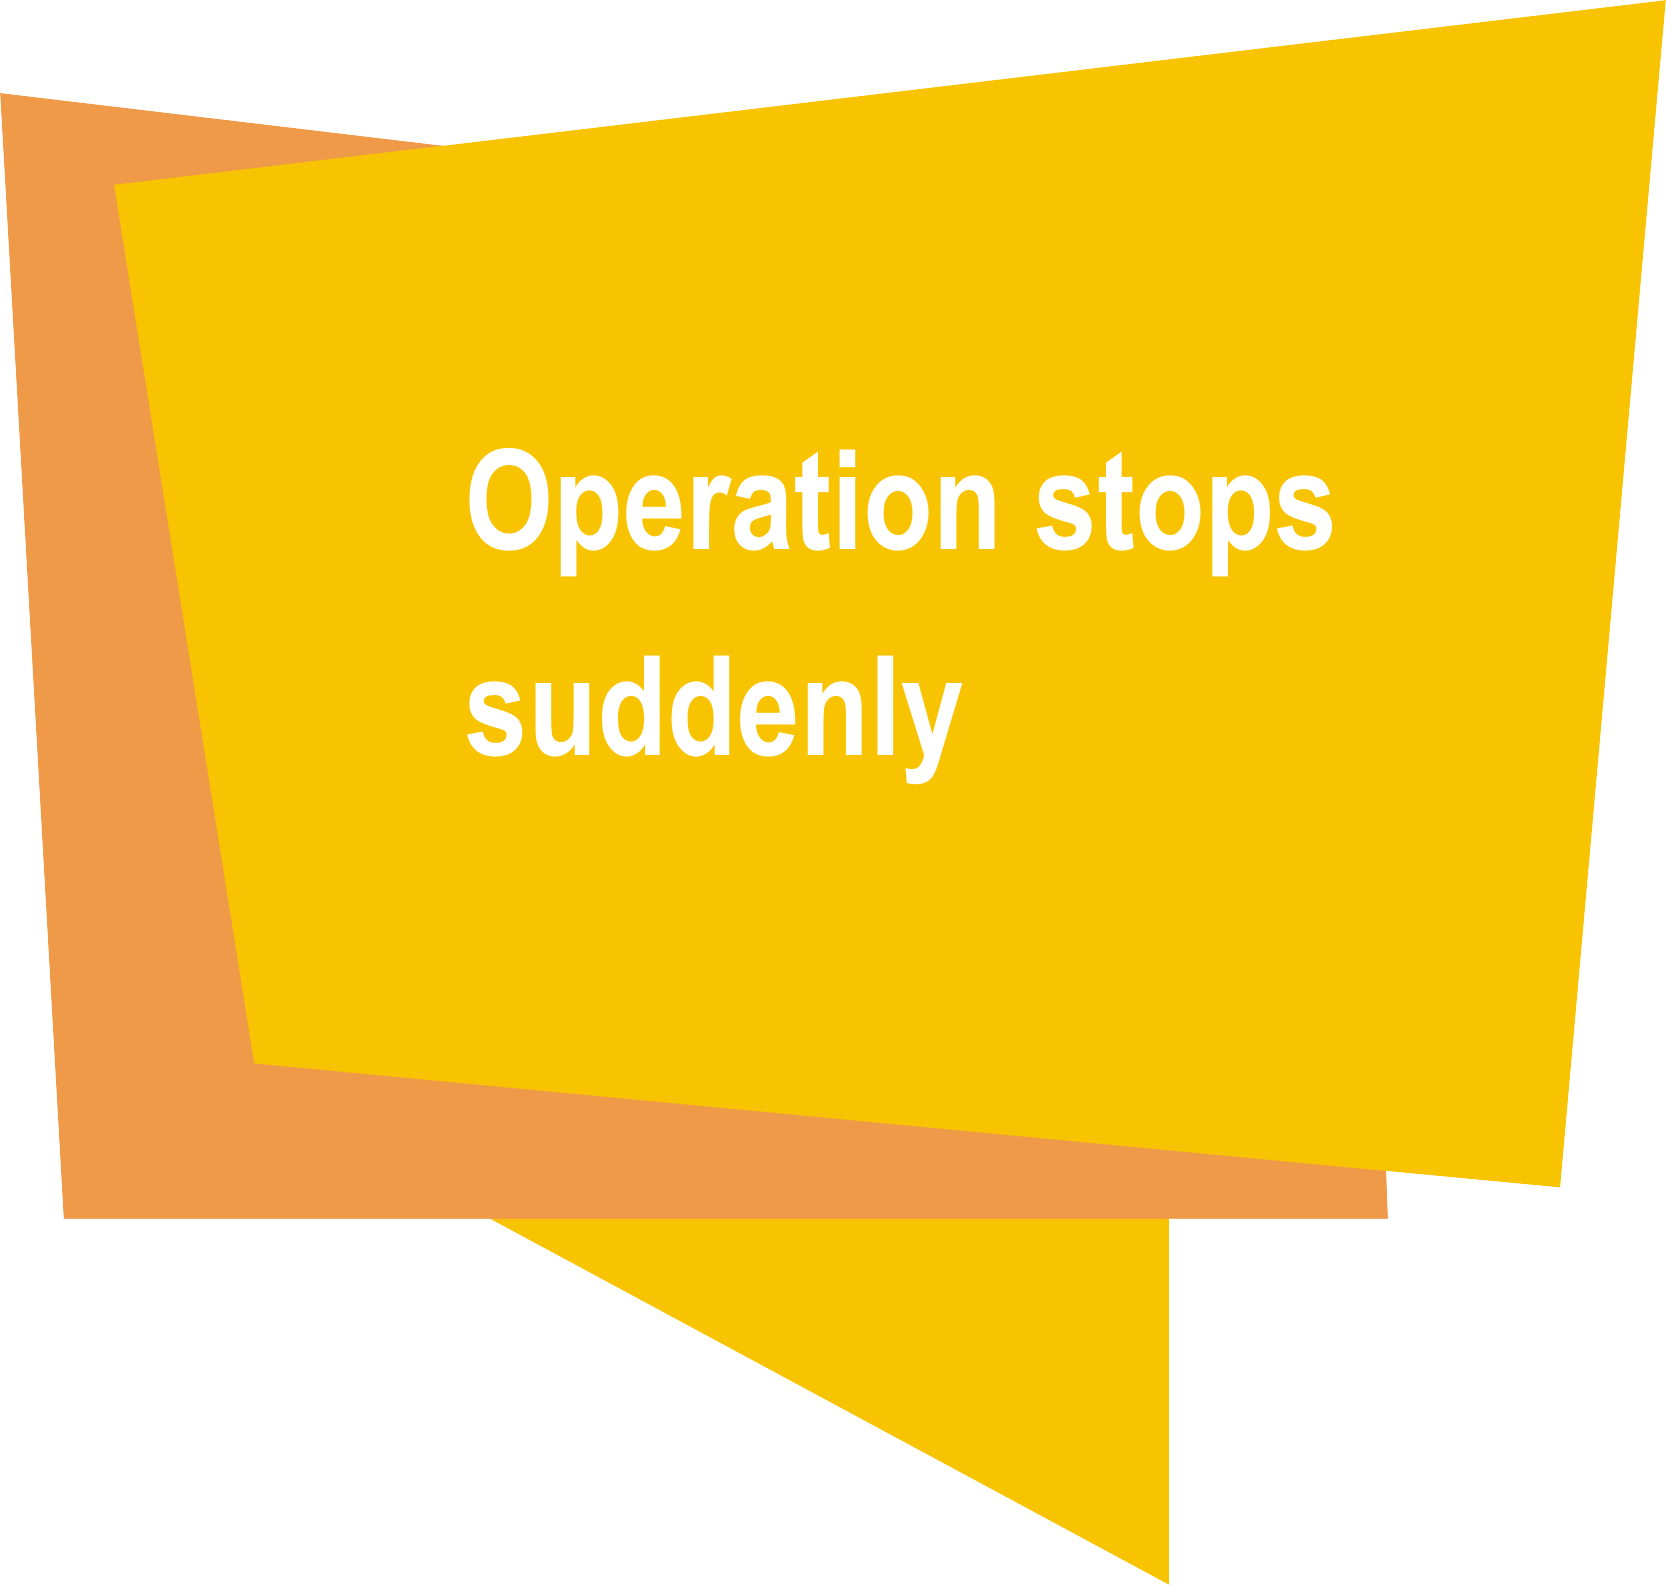 Operation stops suddenly